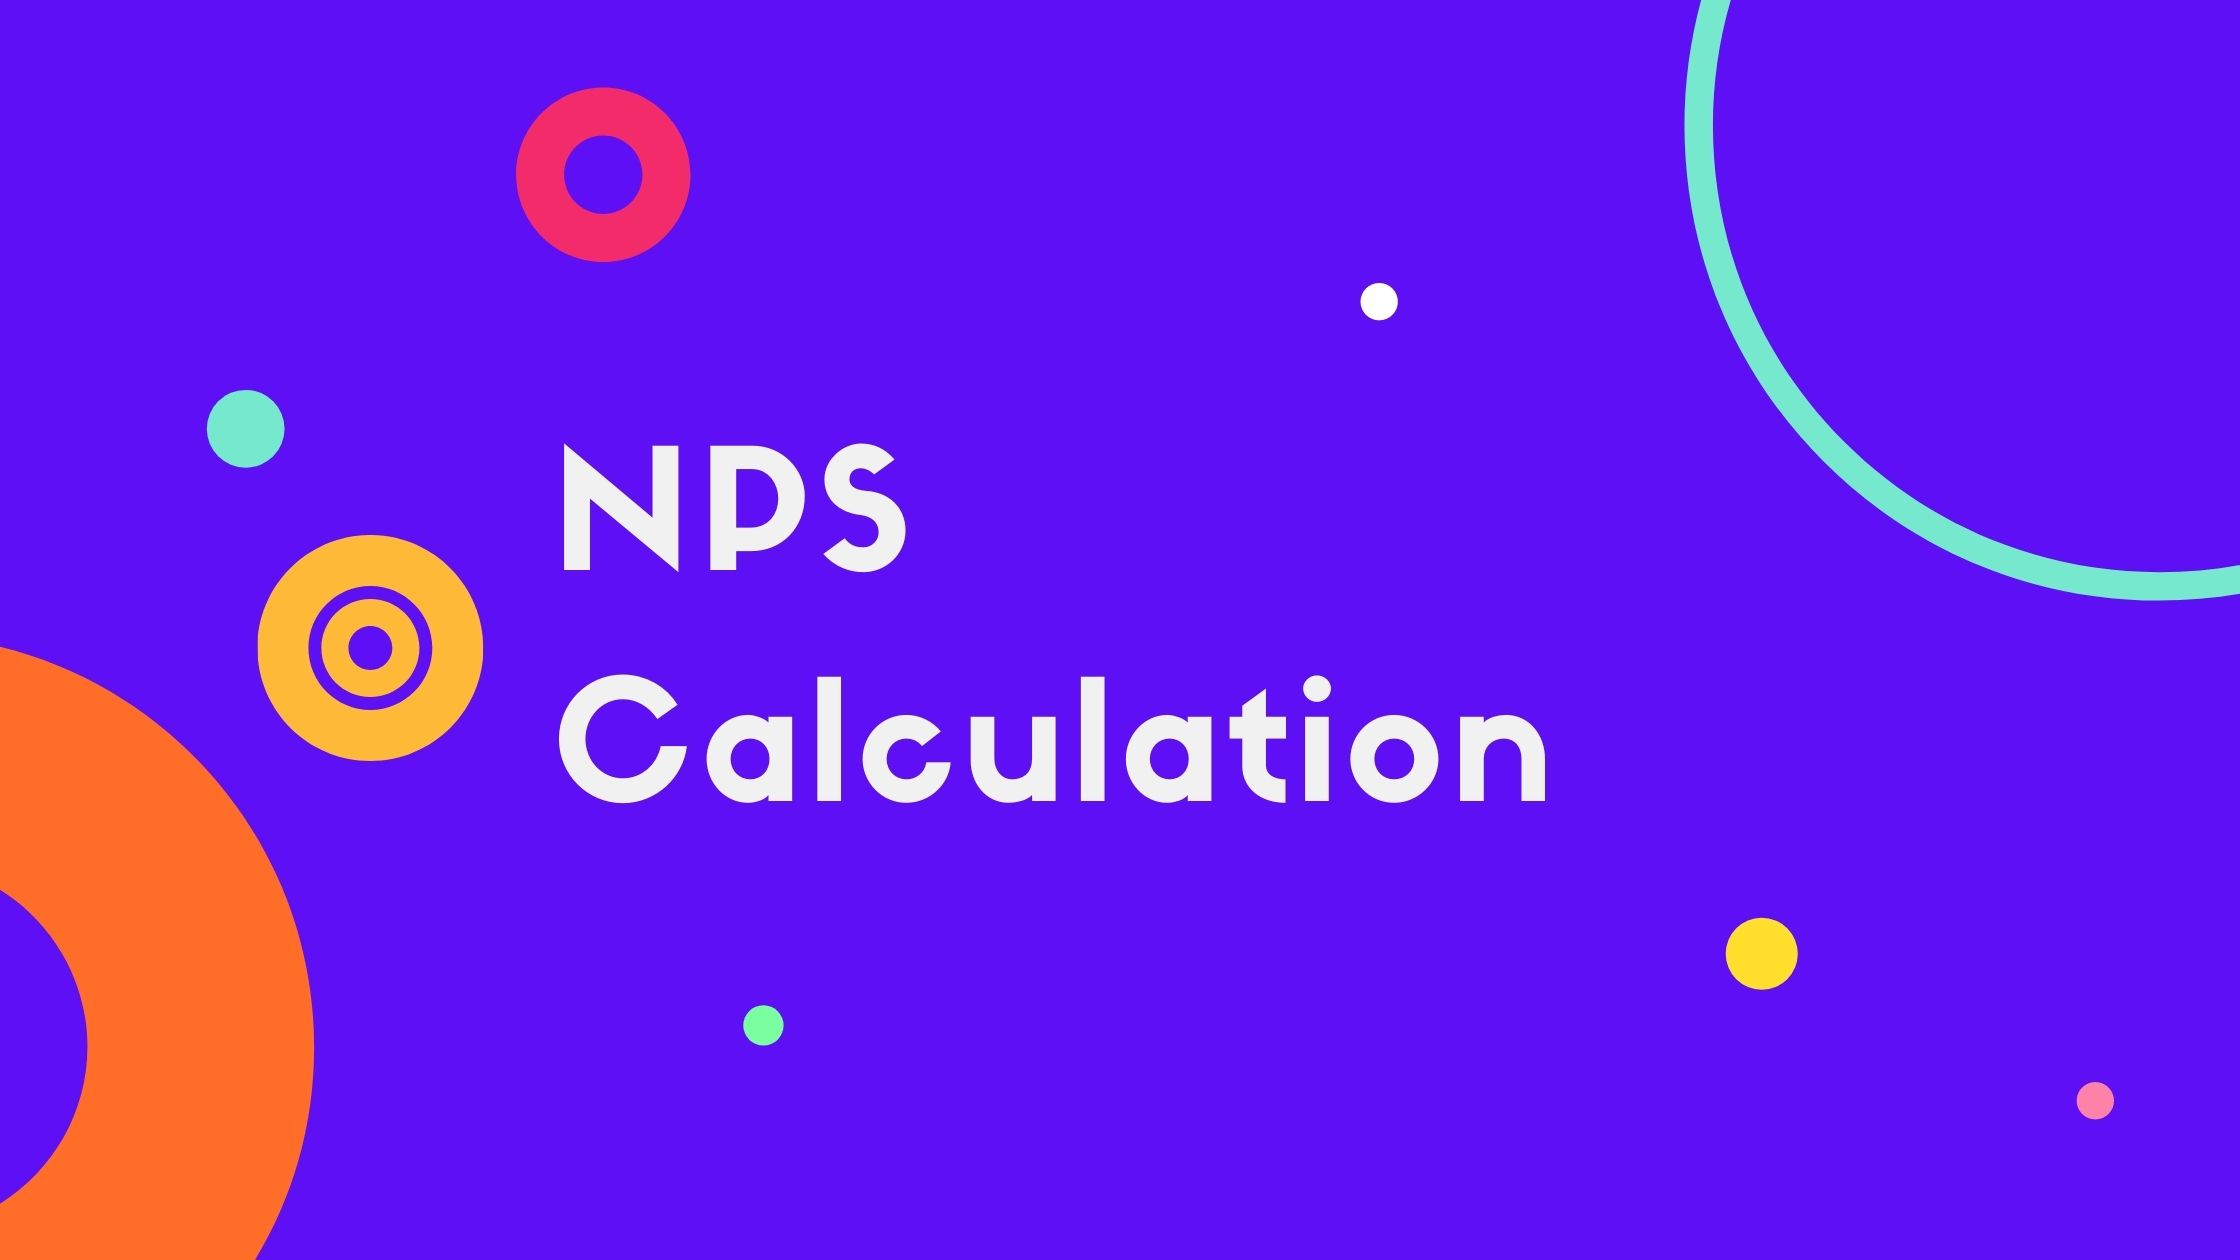 NPS Calculation - How to calculate NPS